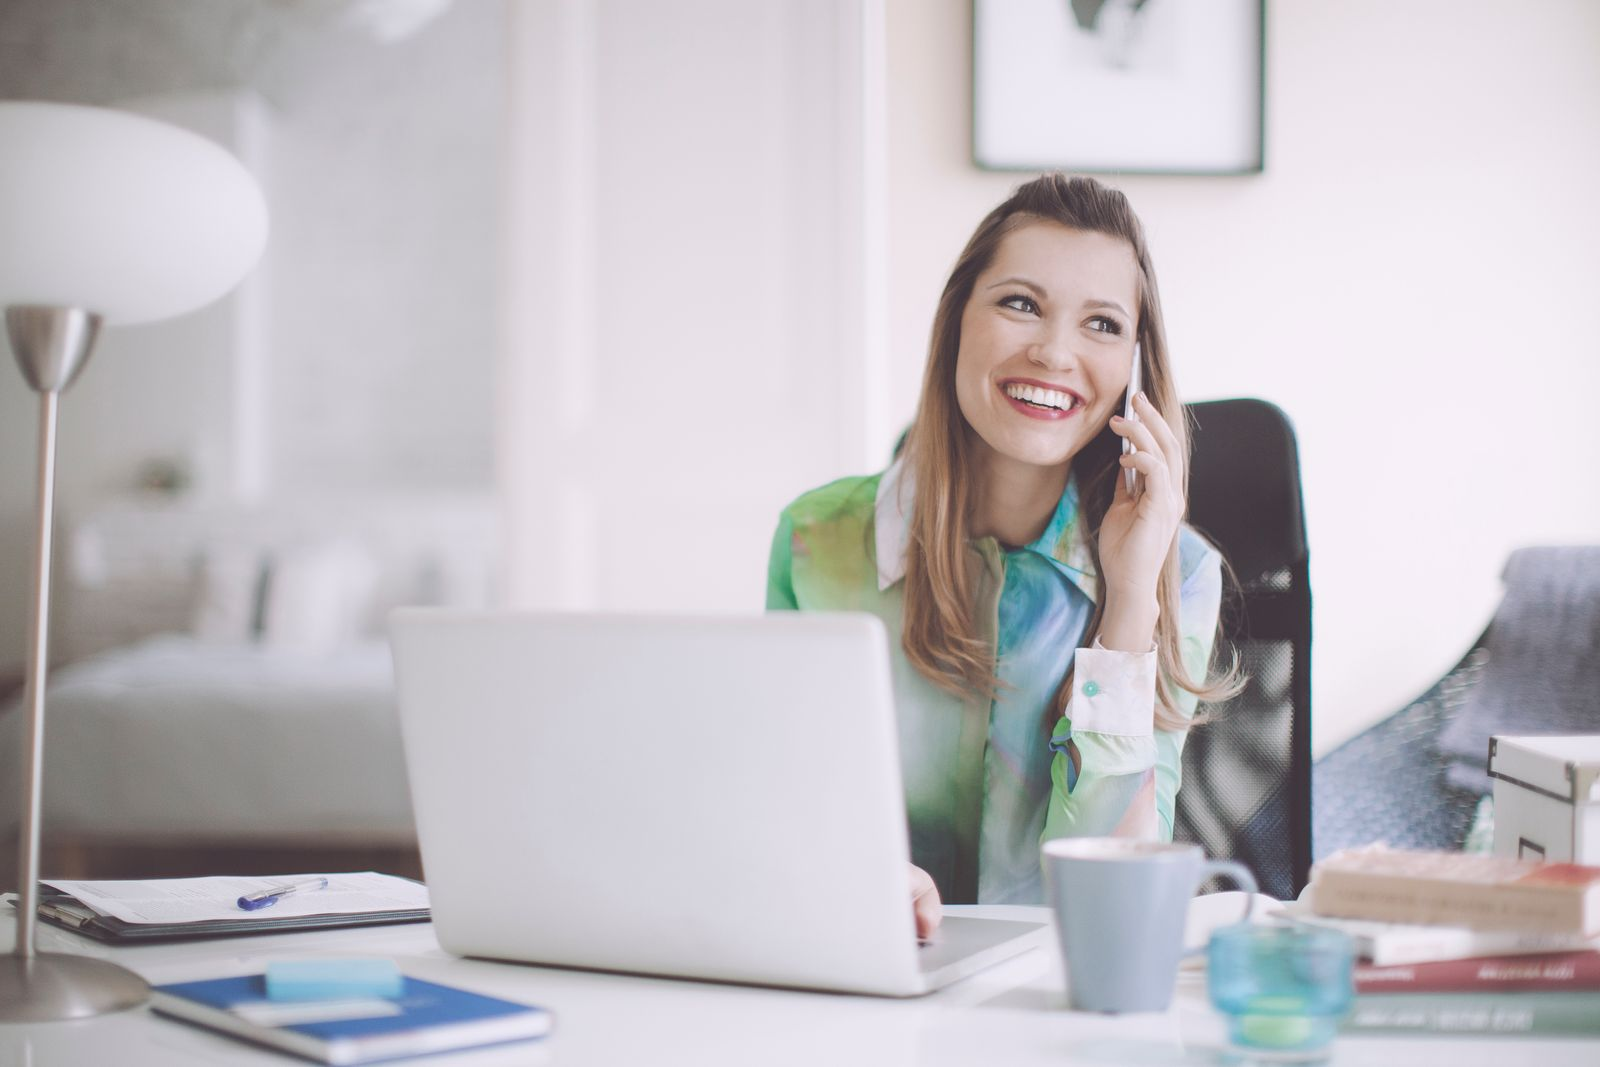 Benefits of teleworking and technology